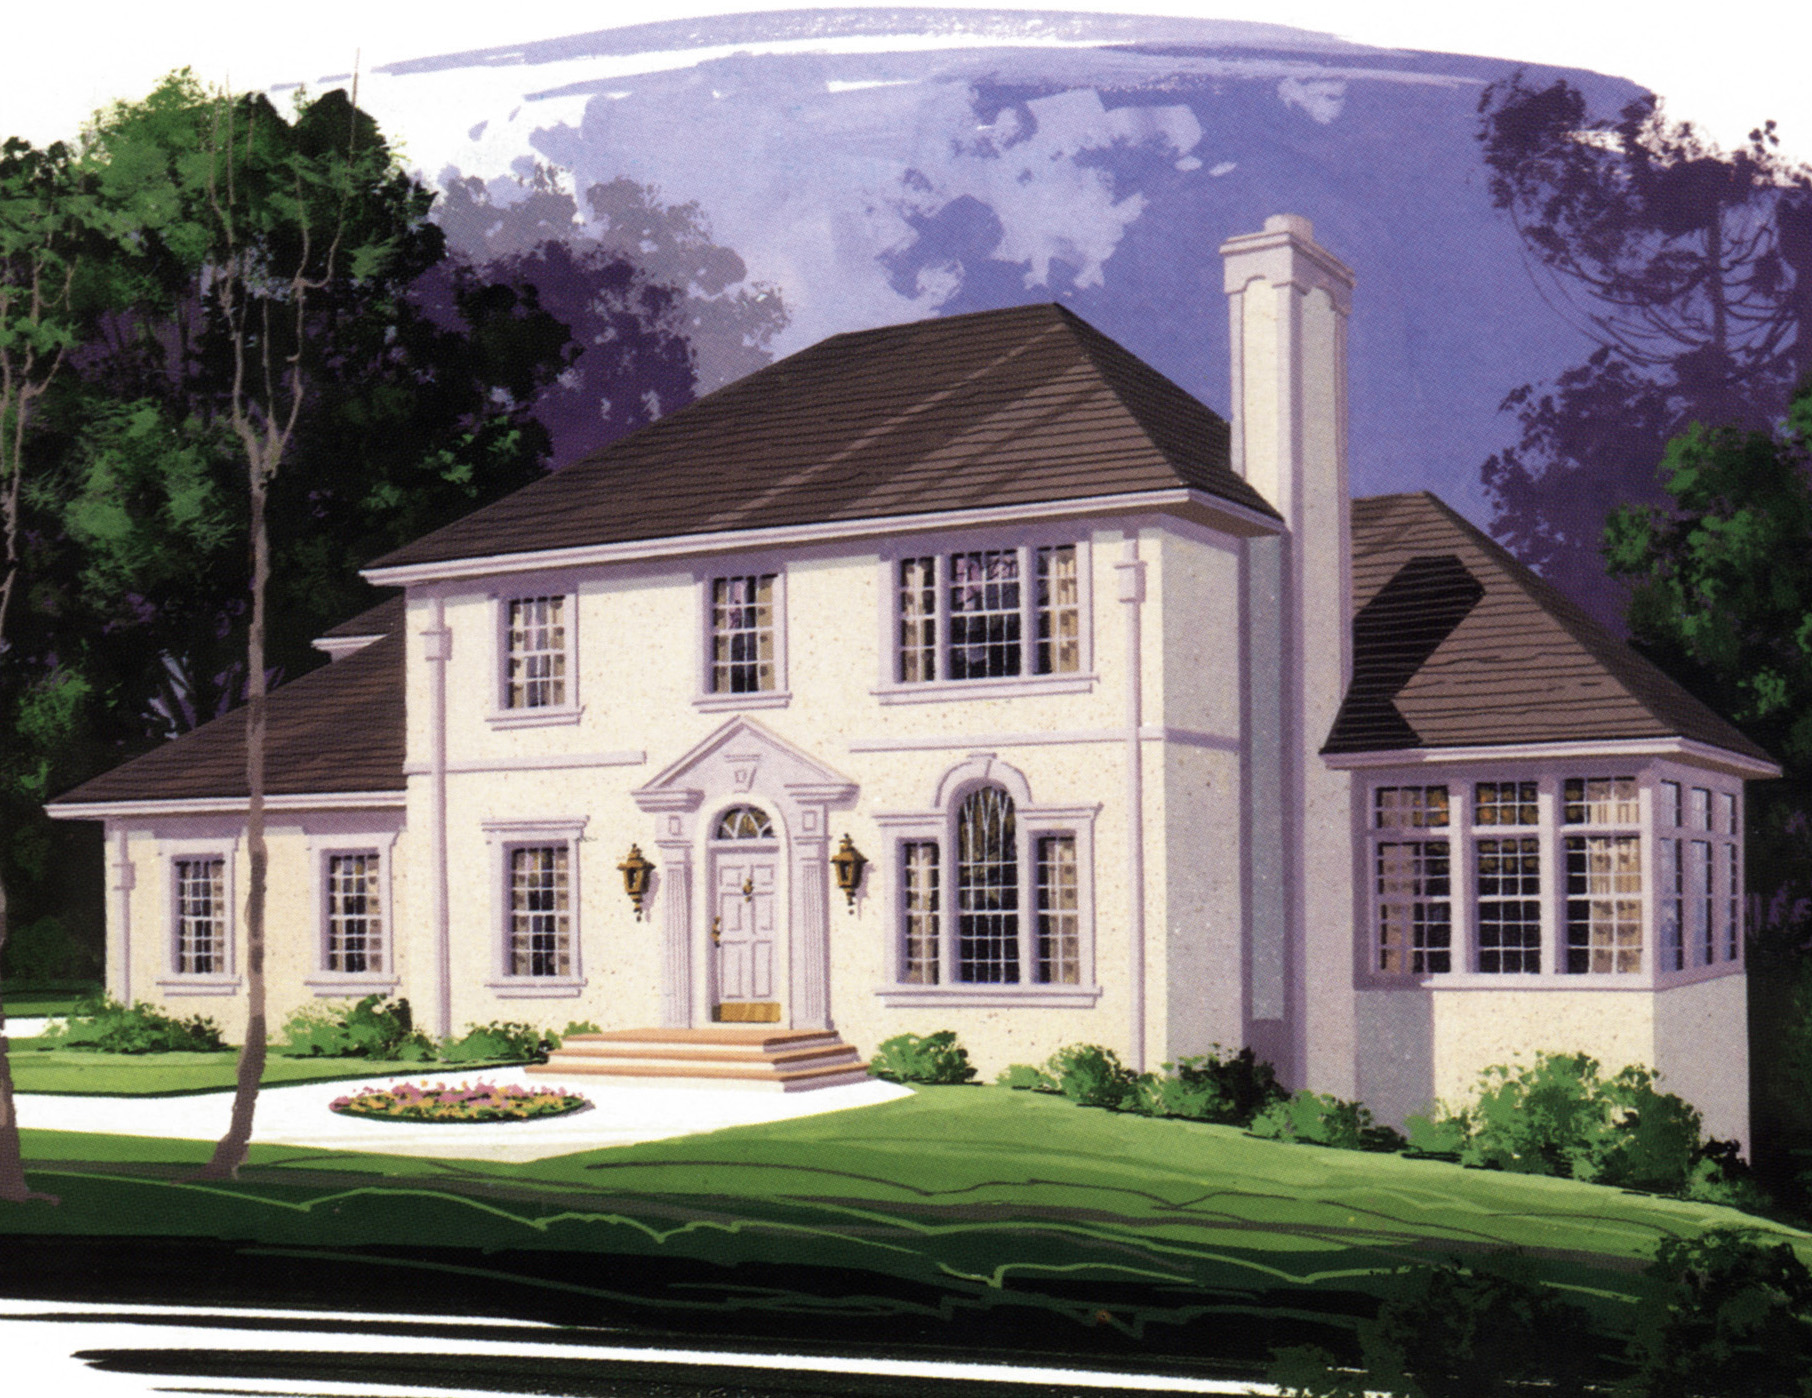 European stucco home plan 2099ga 2nd floor master for Stucco home plans